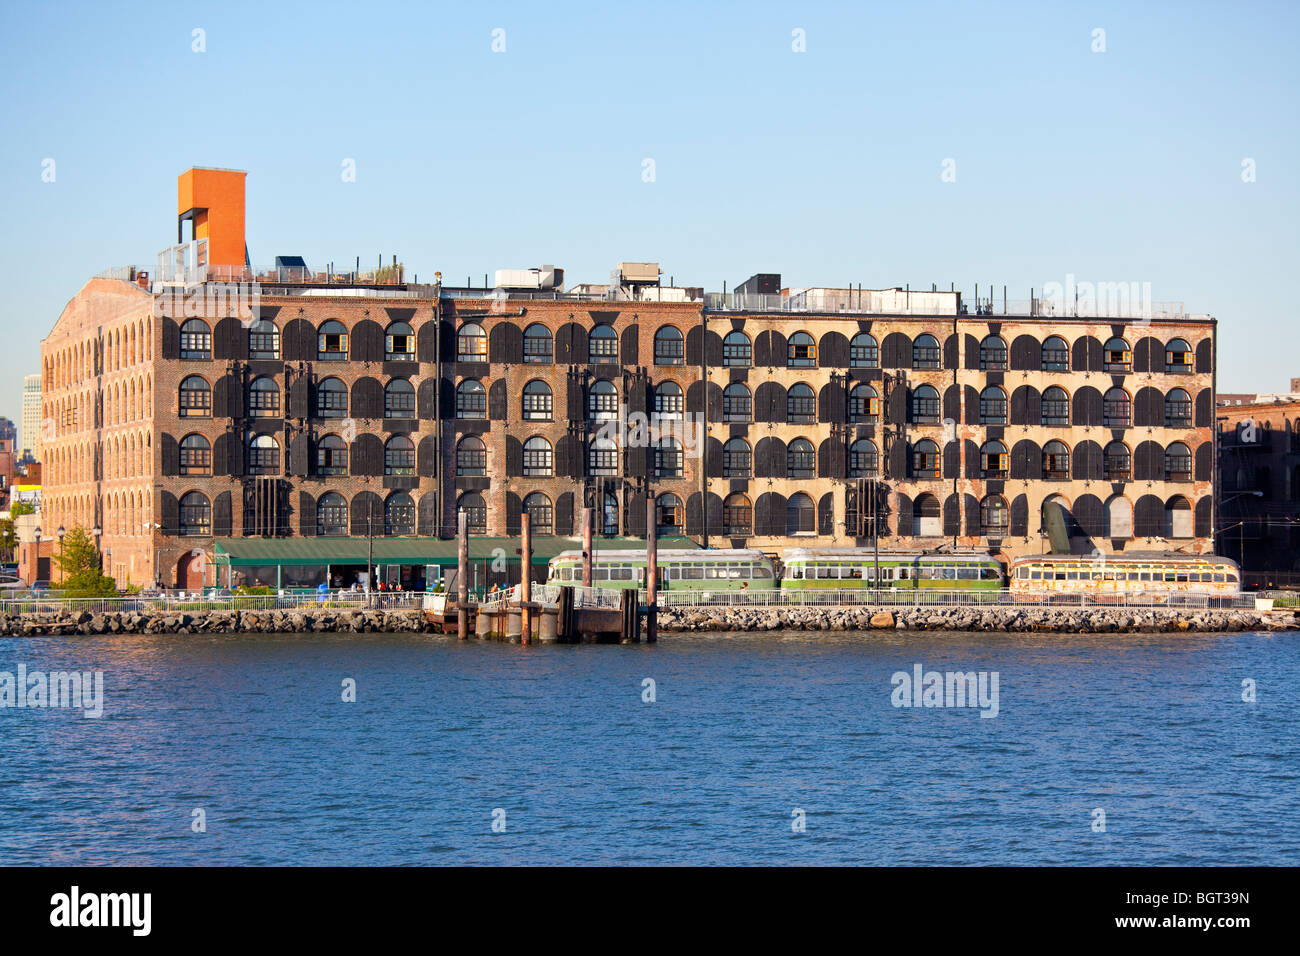 Red Hook Stores Building, now Fairway Market in Red Hook Brooklyn, New York City - Stock Image